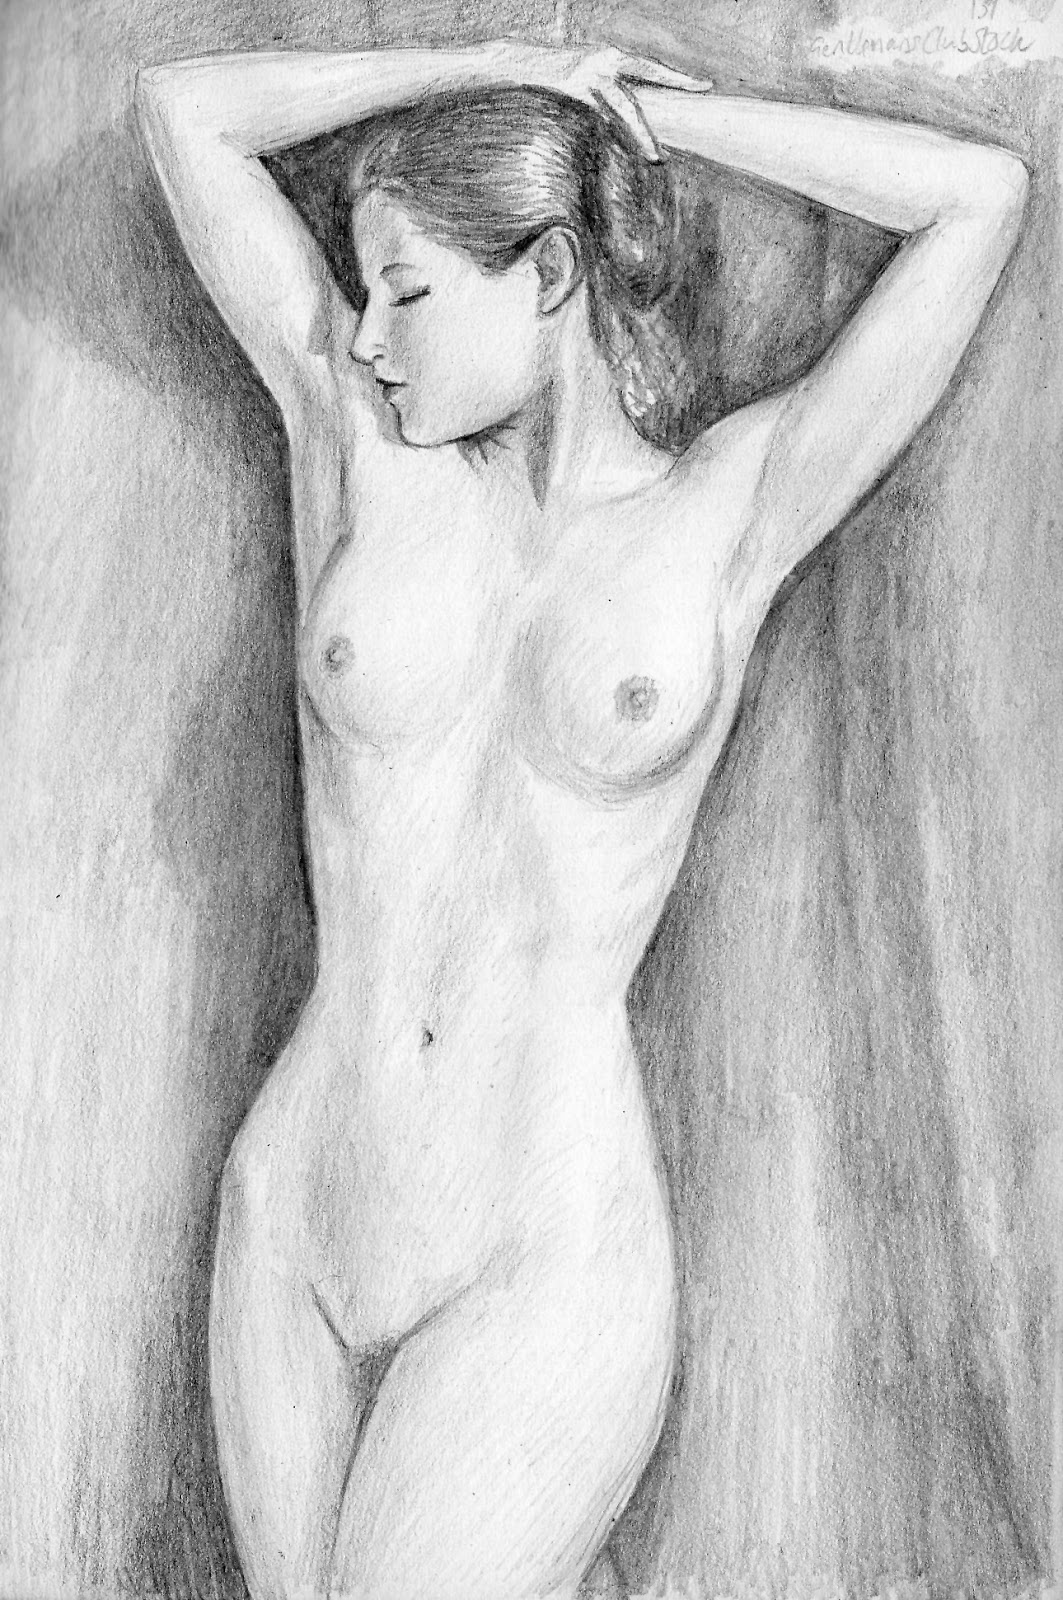 Naked cocks pencil sketches nude comics